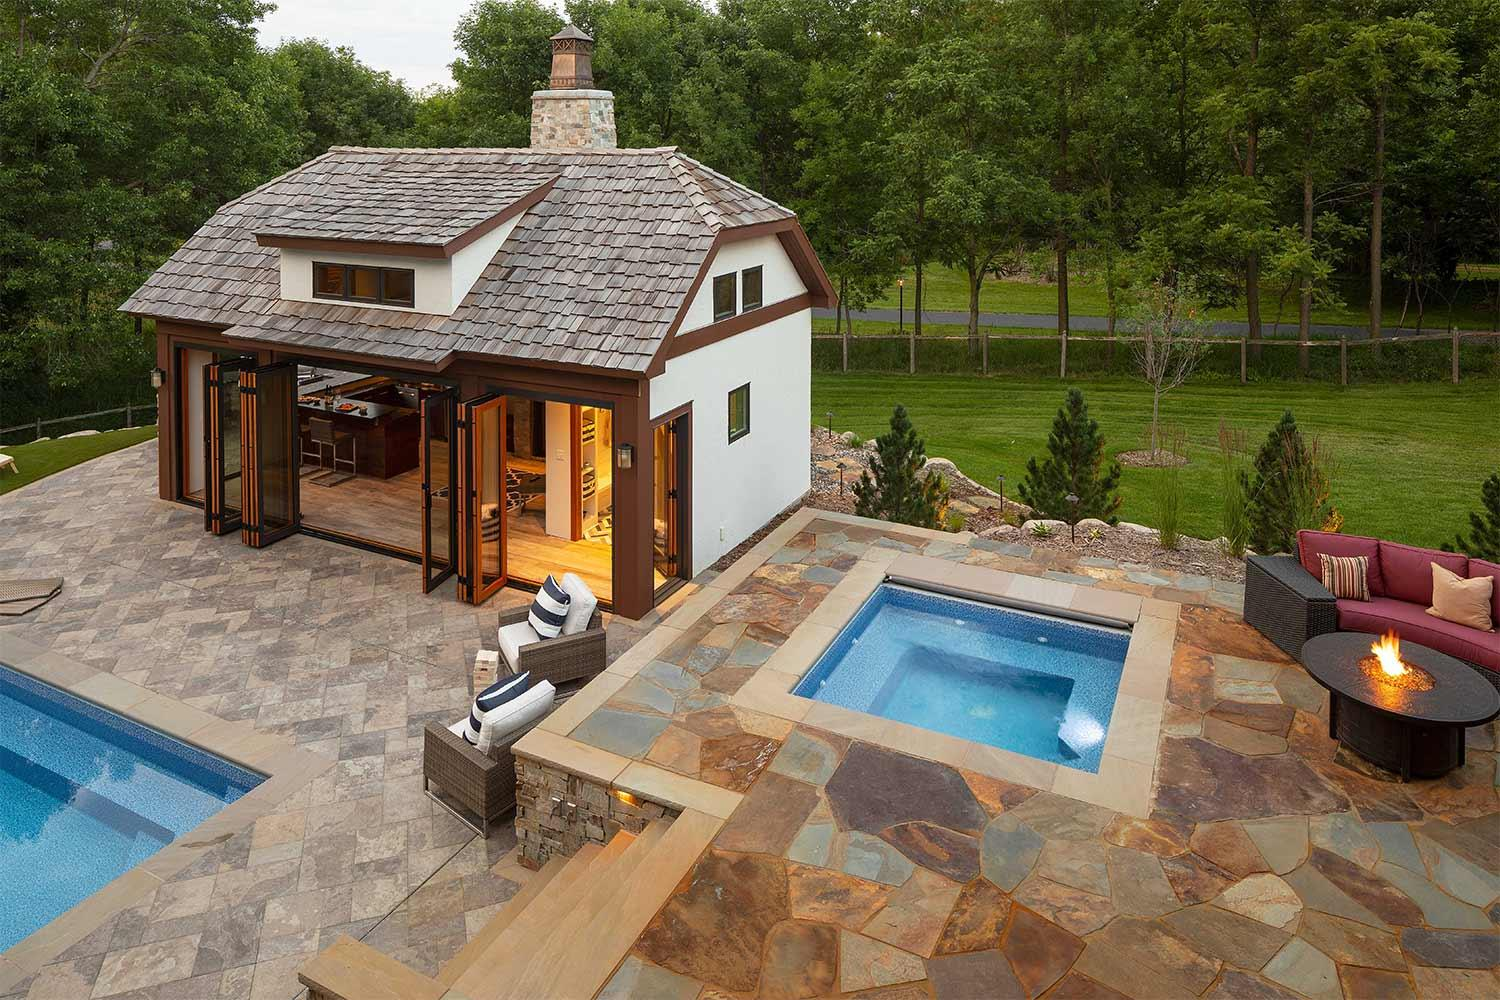 Custom Minneapolis Swimming Pool Design Installation Southview Design Minneapolis St Paul,How To Paint Ikea Furniture Without Sanding